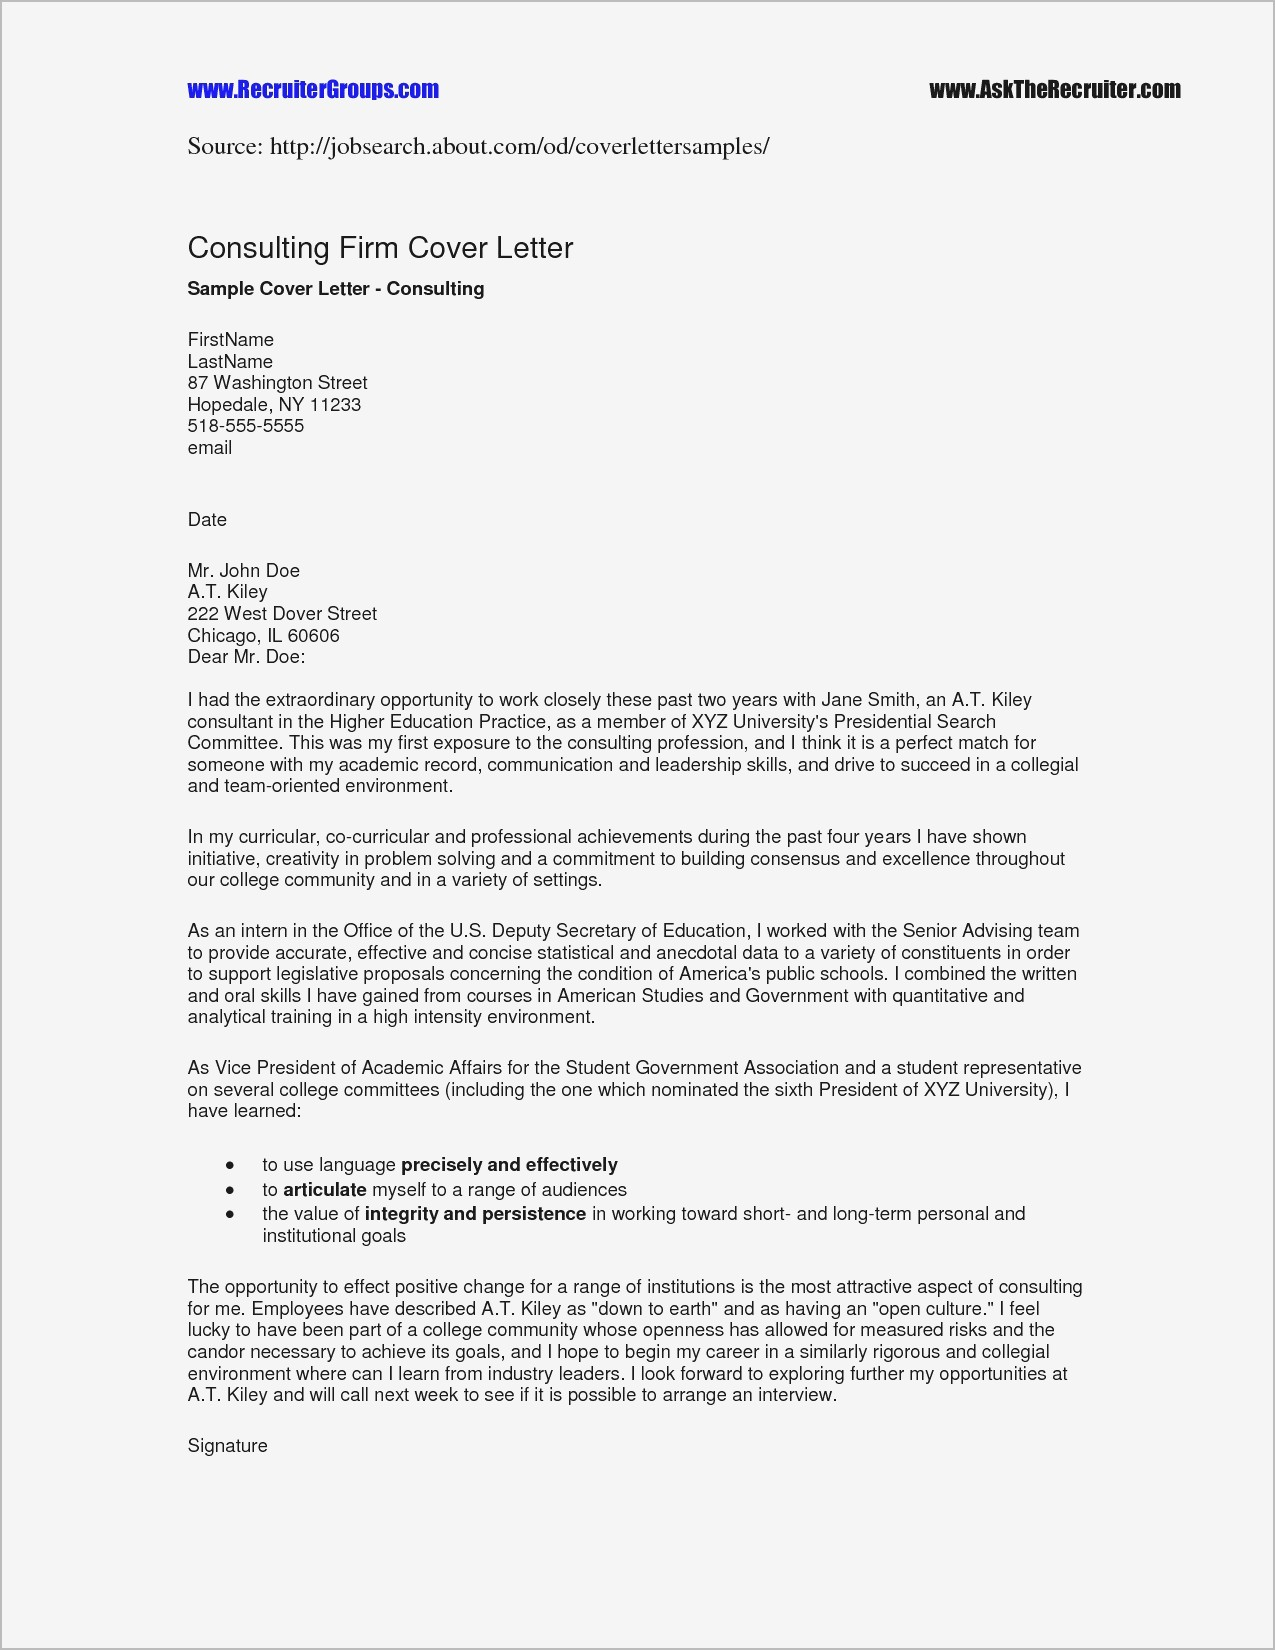 Free foreclosure letter template examples letter cover templates free foreclosure letter template short cover letter sample pdf format spiritdancerdesigns Gallery